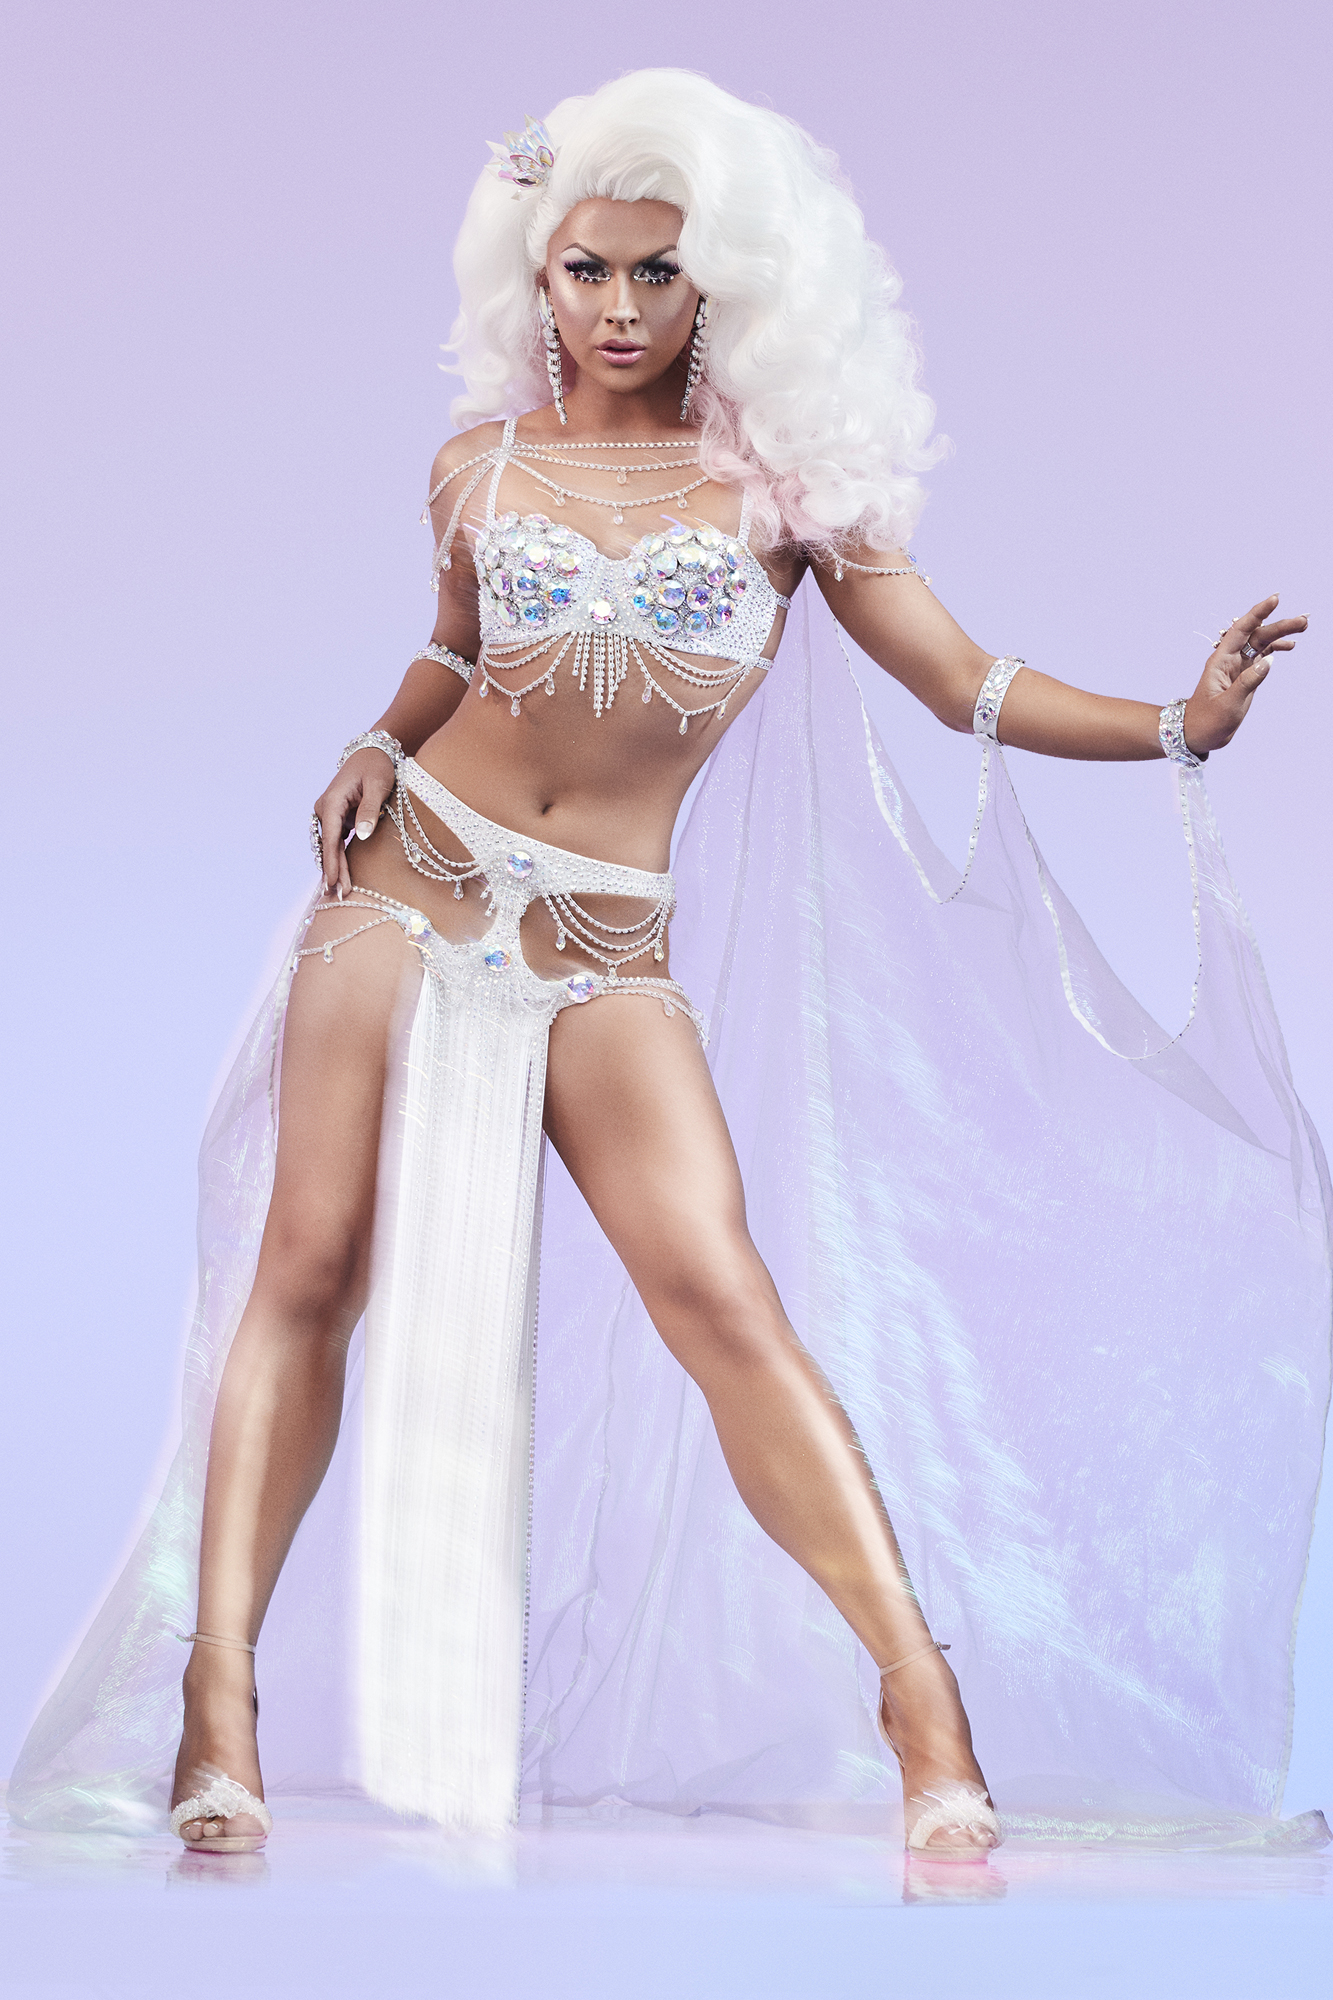 ELIMINATED IN 9TH PLACE: Farrah Moan